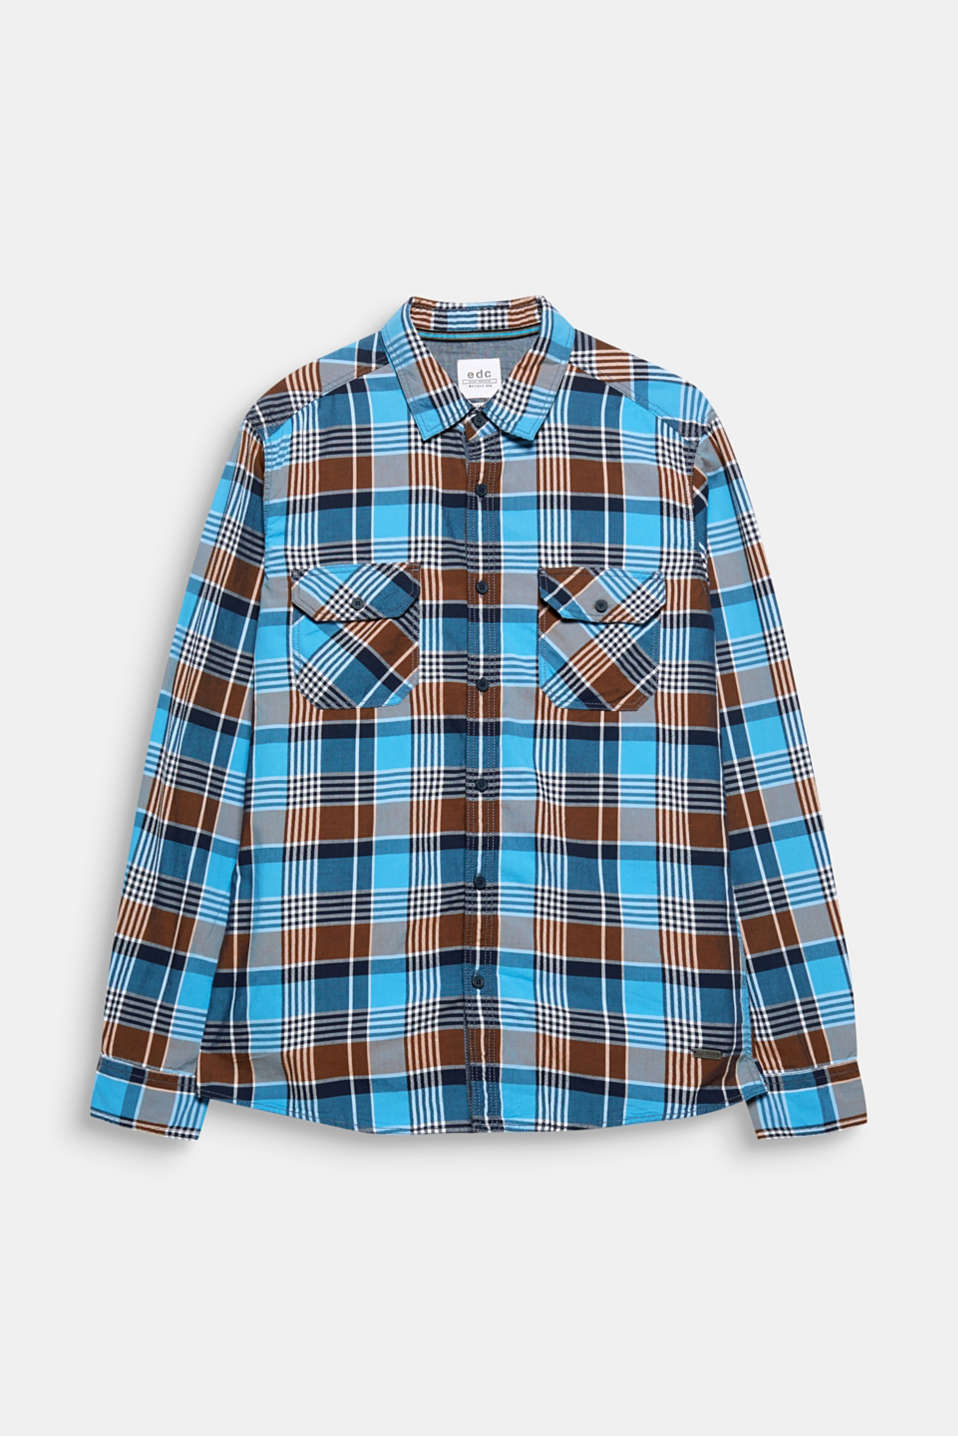 The distinctive check pattern gives this shirt a stylish country look.